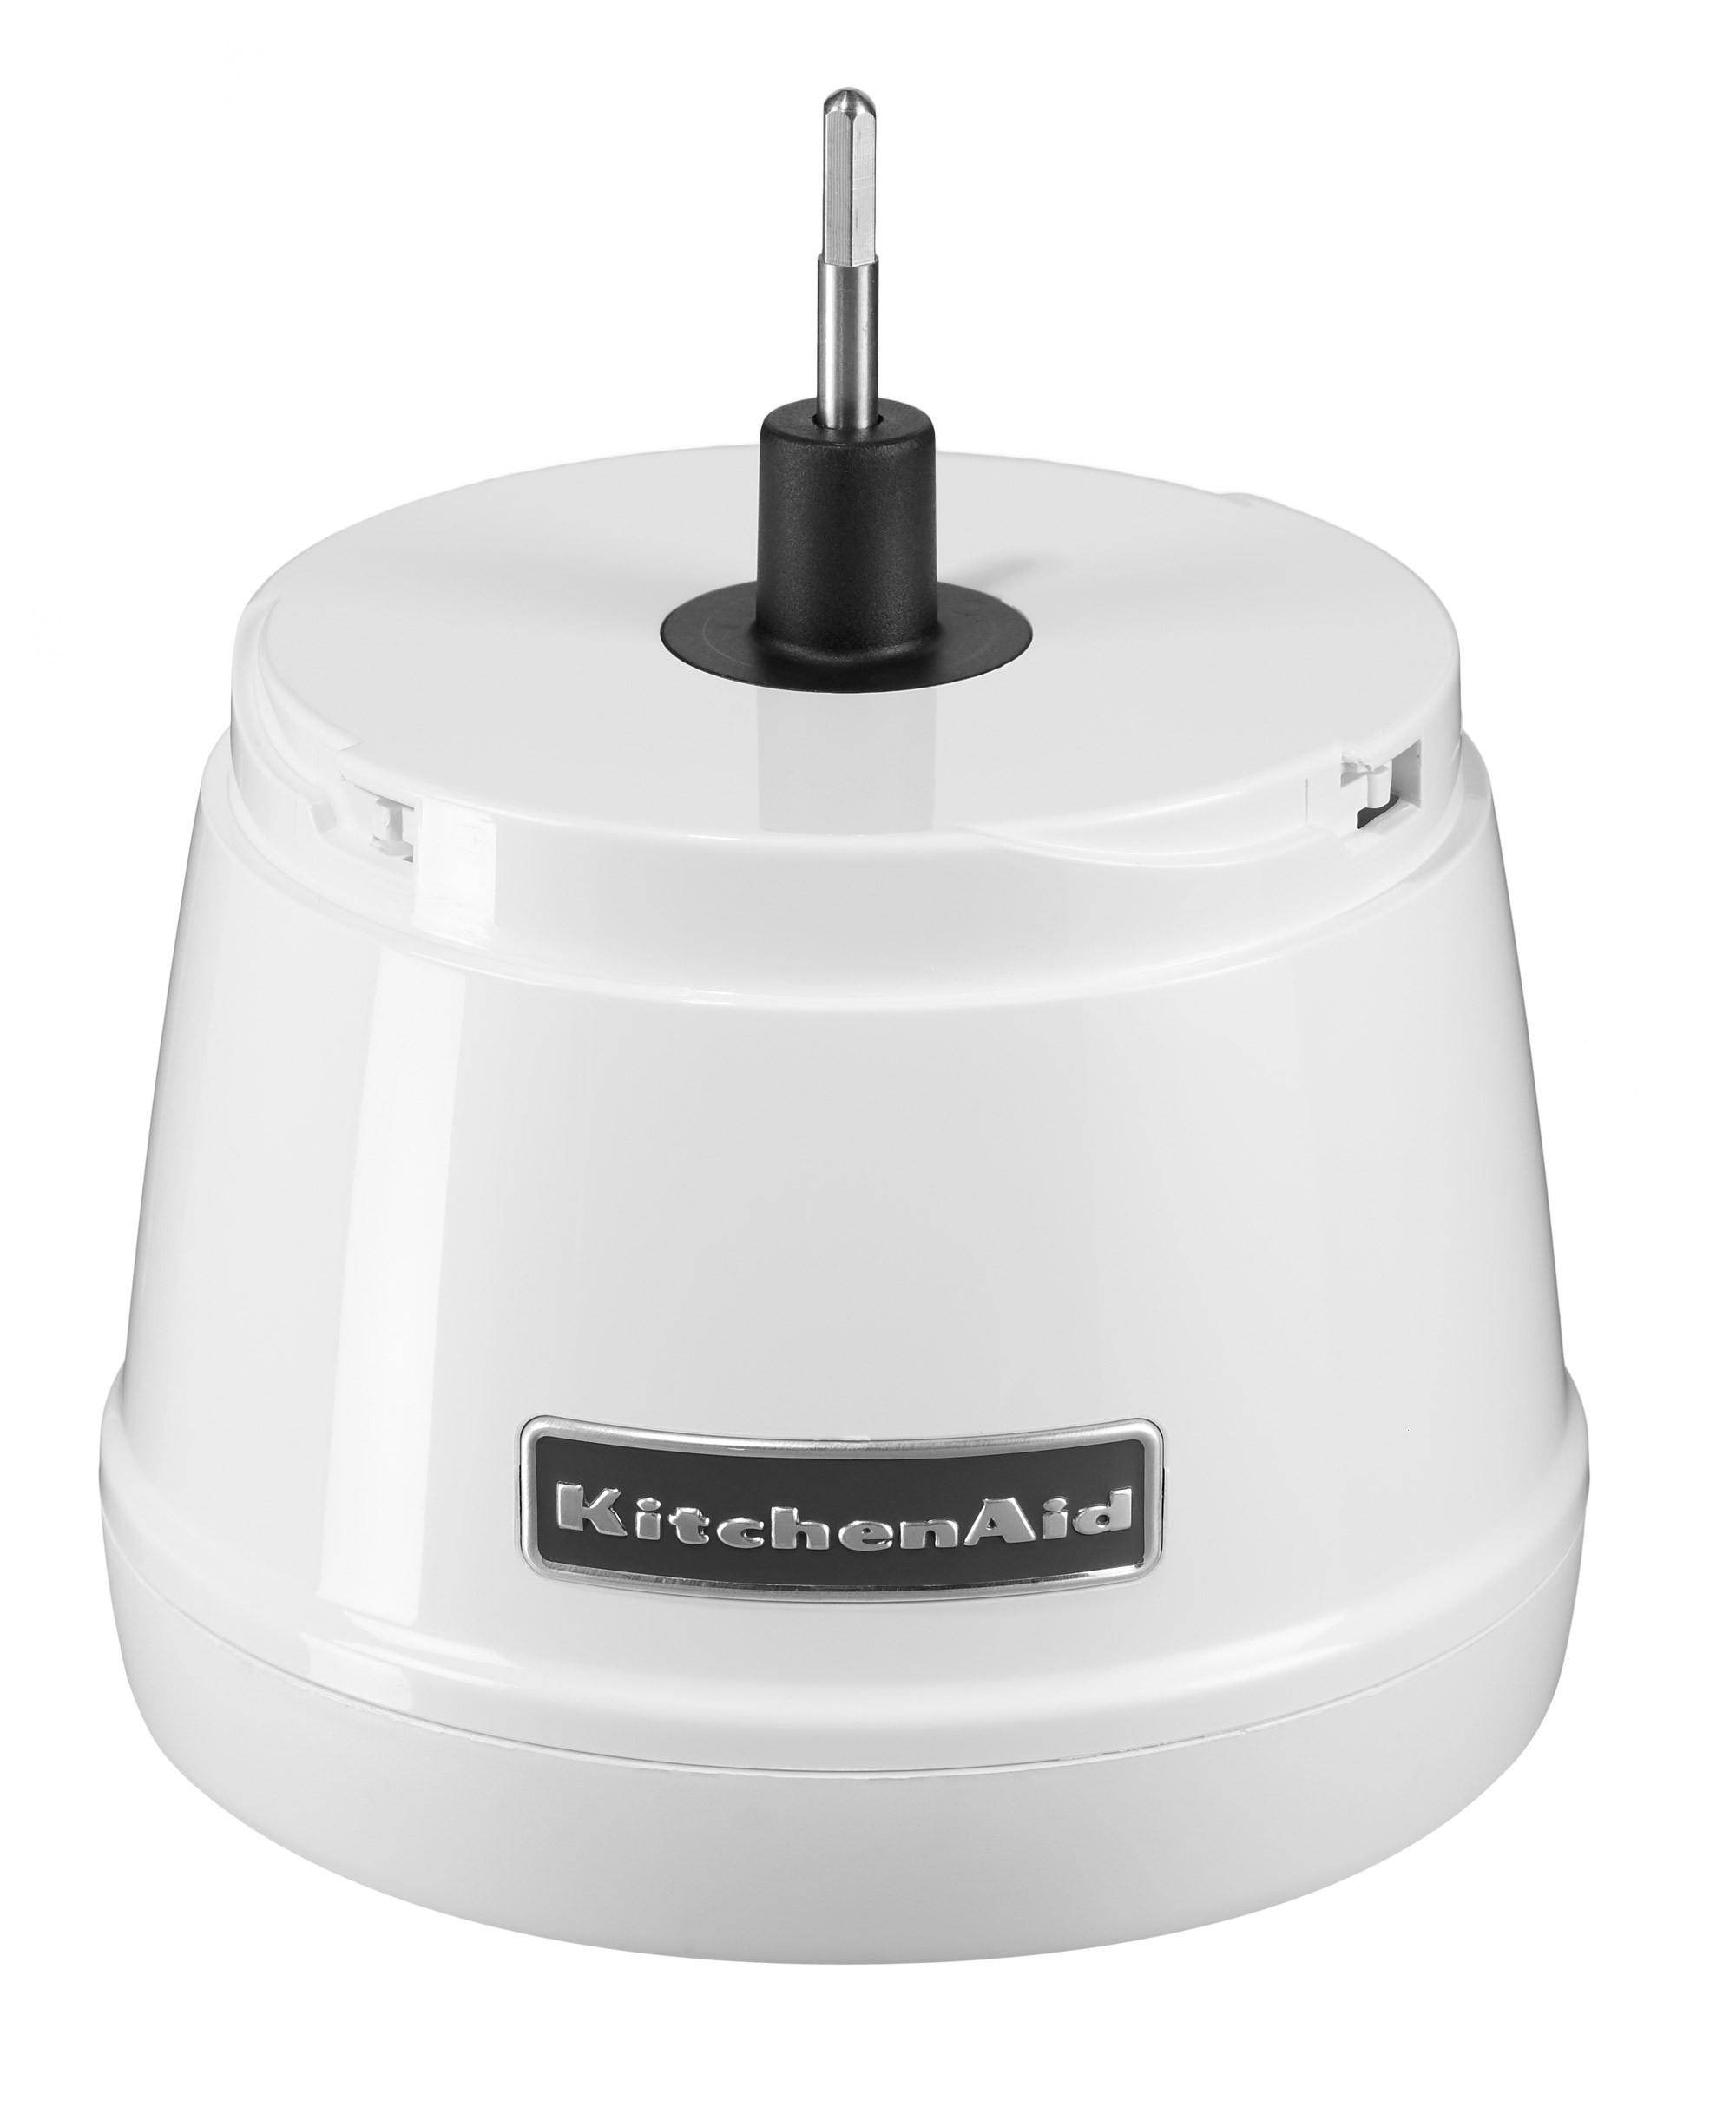 KITCHENAID - 5 KFC 3515 EWH